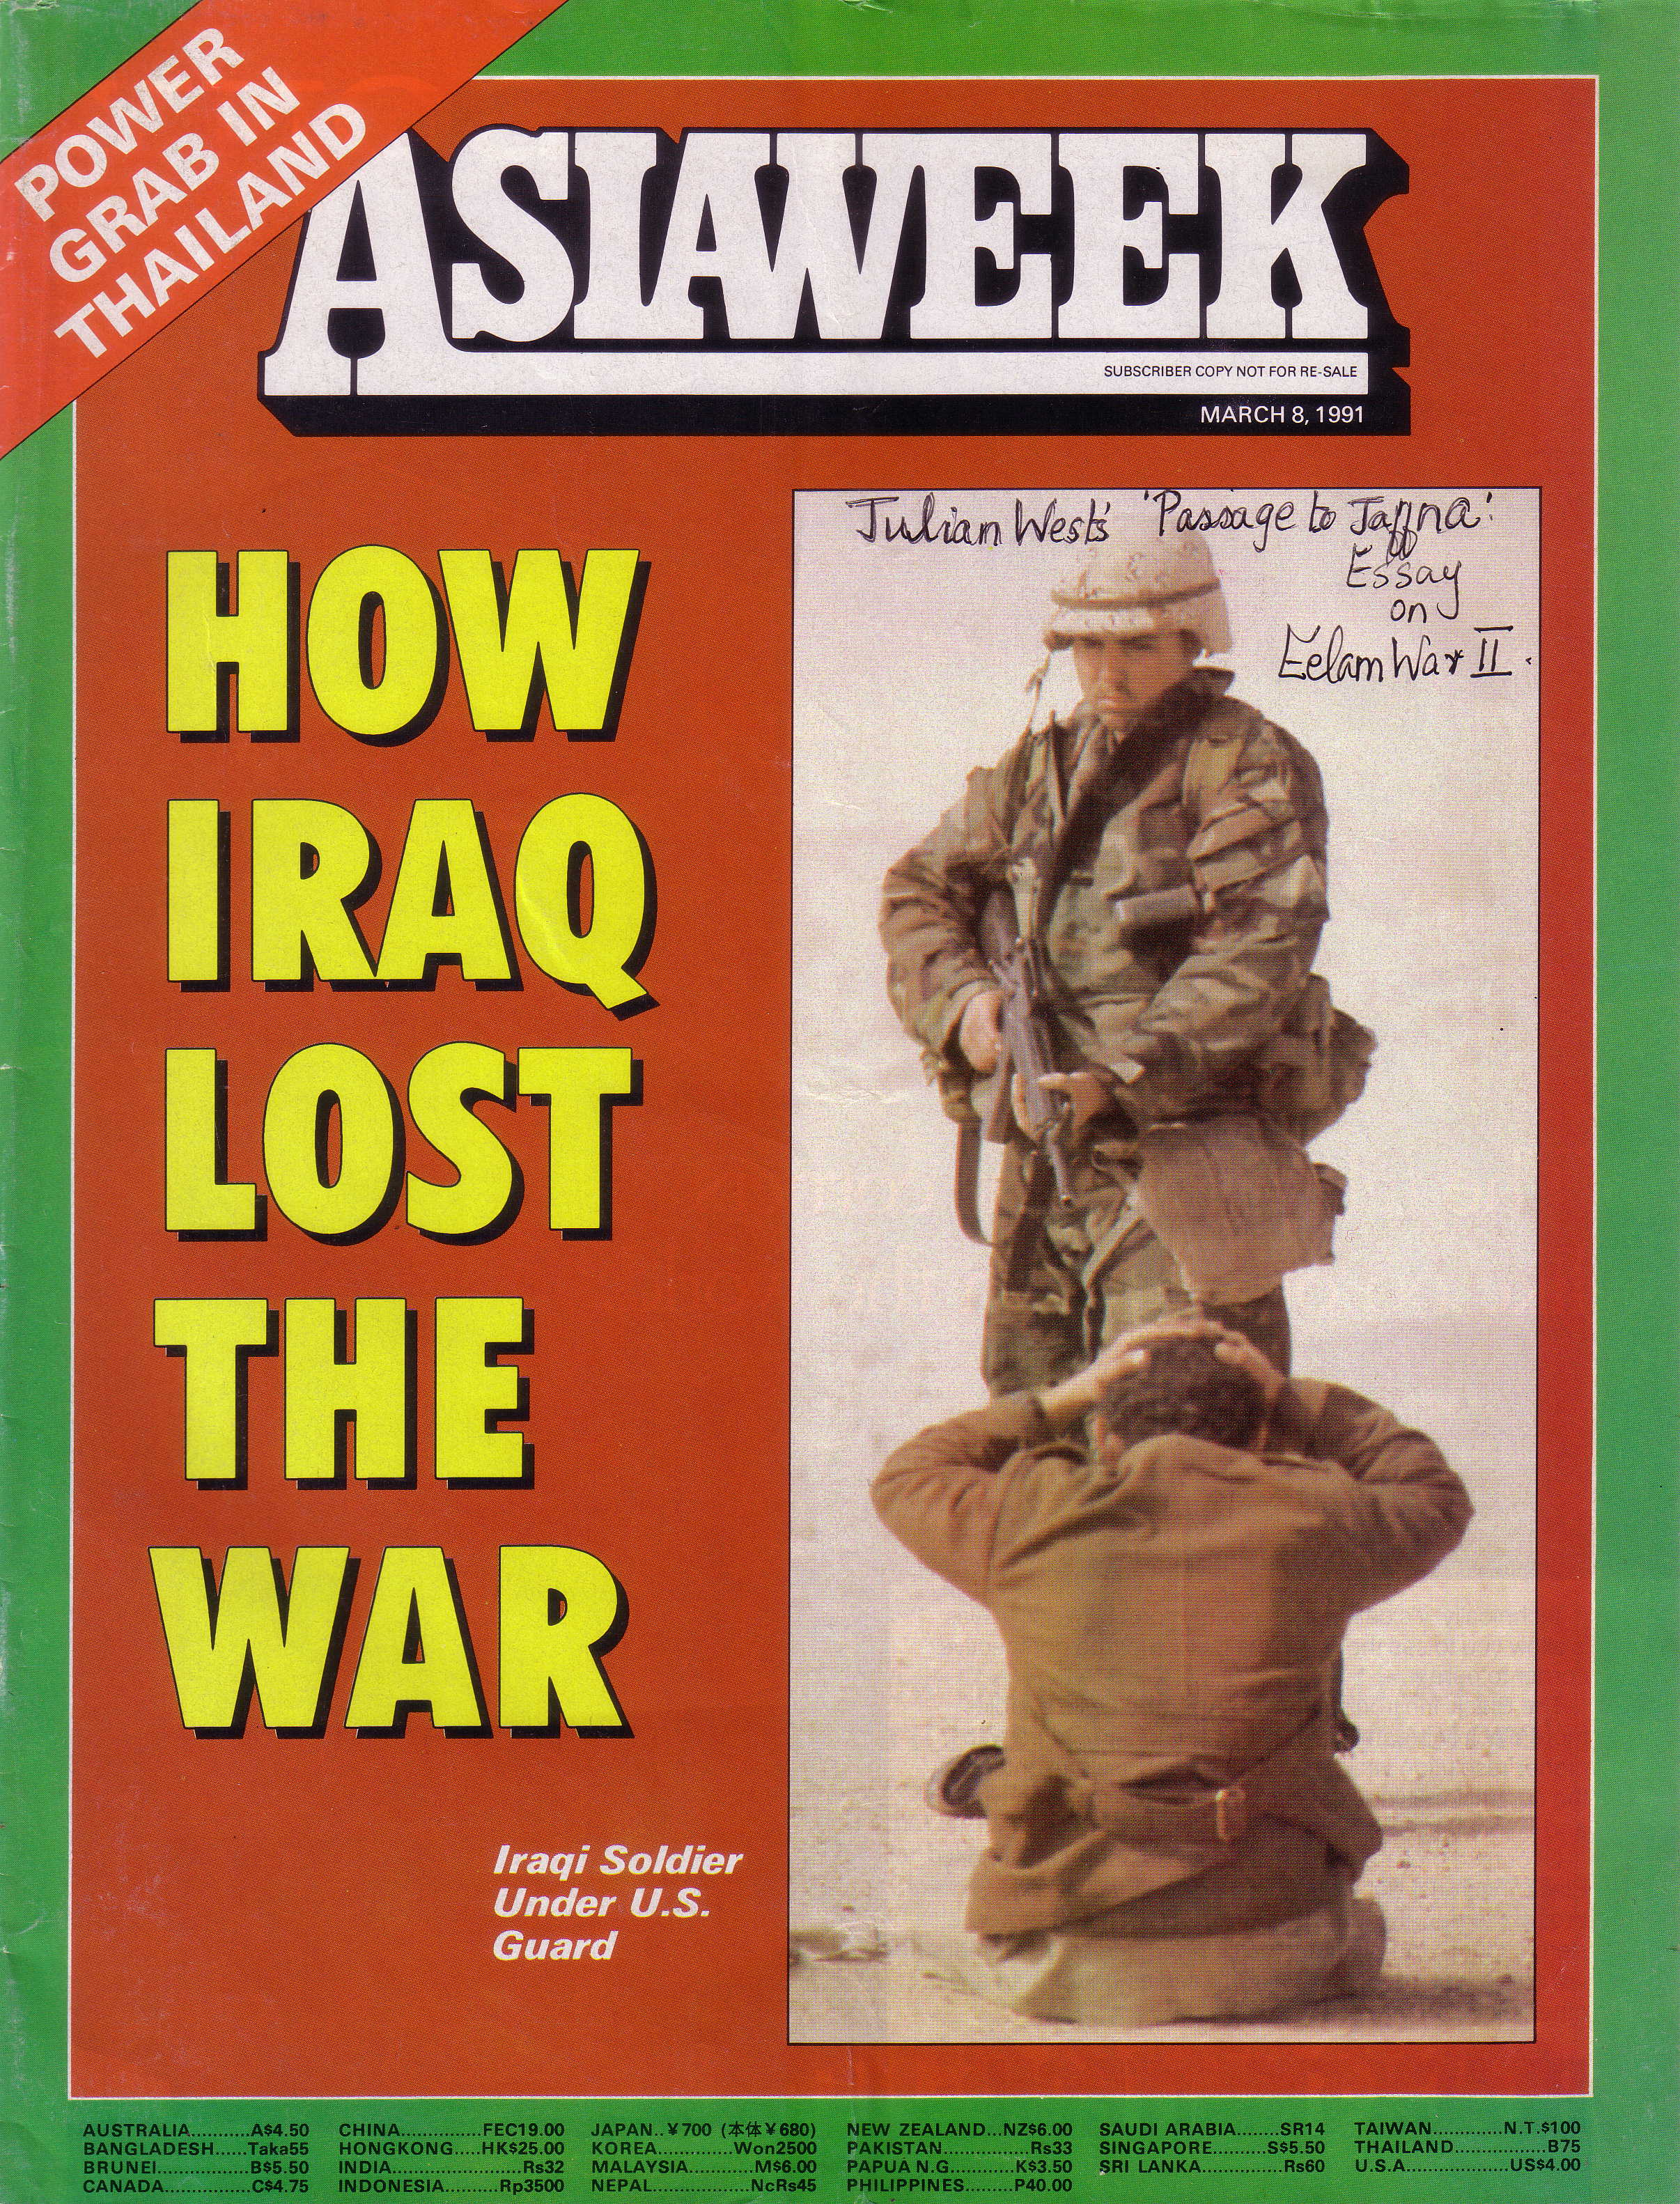 Asiaweek March 8 1991 cover